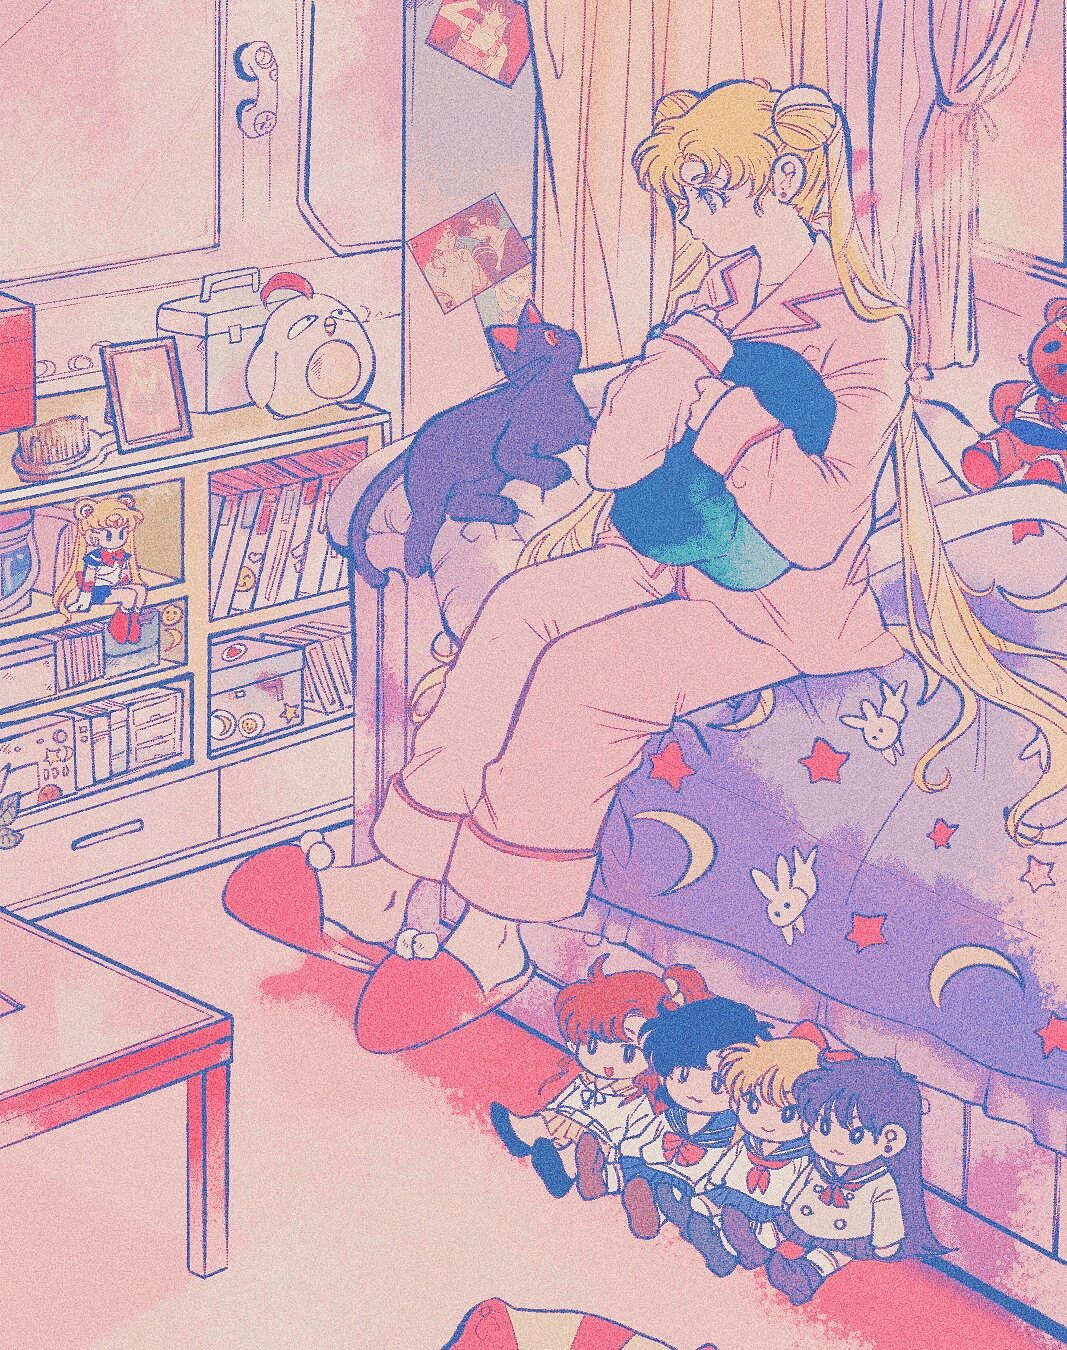 1girl animal_print bedroom bishoujo_senshi_sailor_moon black_cat blonde_hair blue_eyes book bunny_print cat character_doll comb crescent curtains full_body highres indoors long_hair long_sleeves luna_(sailor_moon) no_socks on_bed pajamas photo_(object) picture_frame pikurusu pink_background pink_pajamas red_footwear sailor_moon shelf sitting sleeves_past_wrists slippers star_(symbol) star_print stuffed_animal stuffed_toy symbol_commentary teddy_bear tsukino_usagi twintails very_long_hair